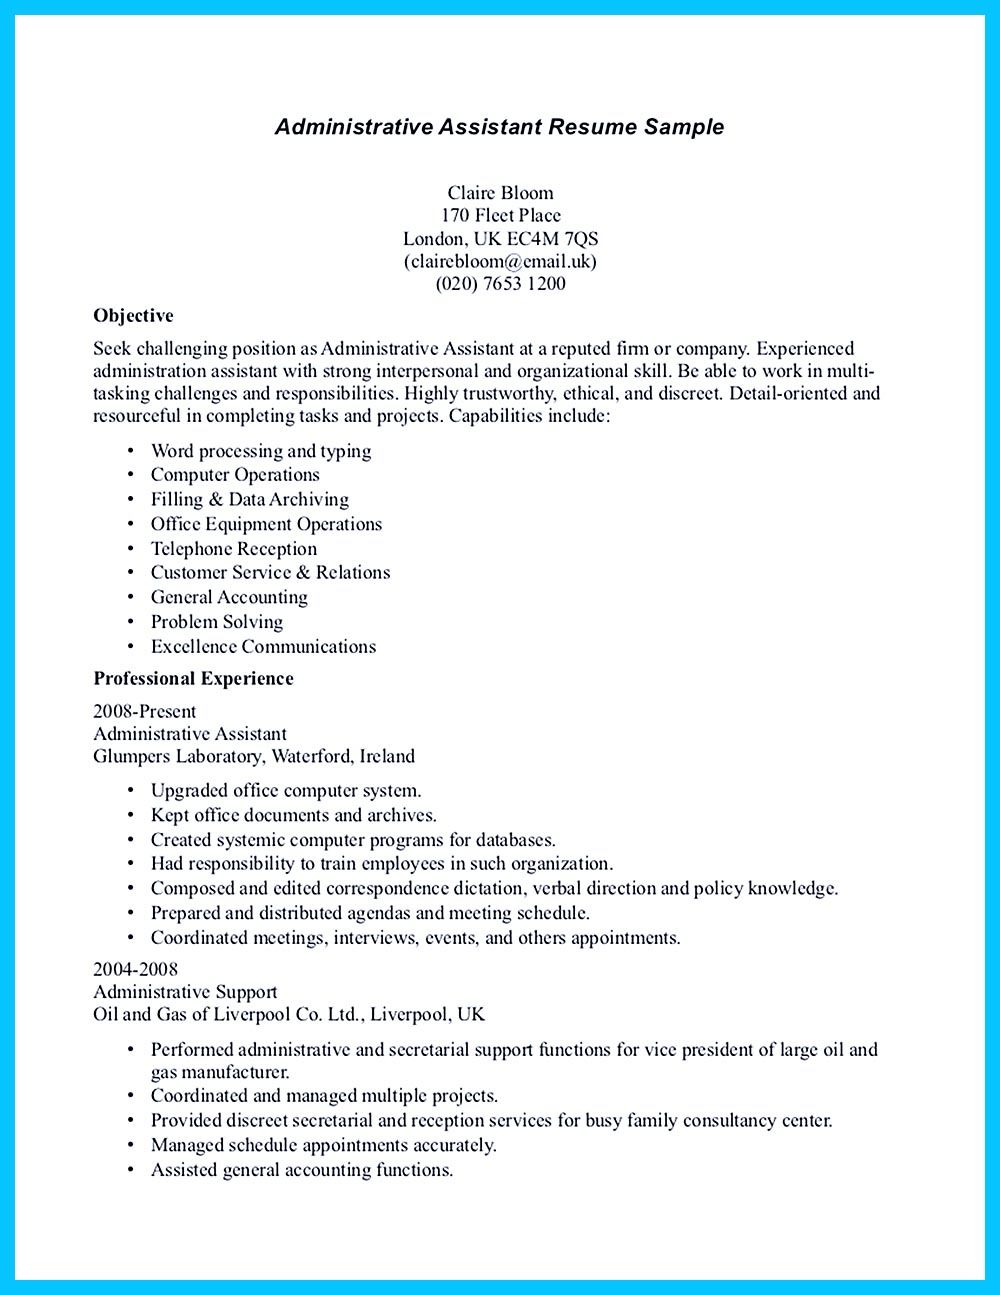 Objective For Resume Medical Assistant Medical Assistant Resume Sample, Medical  Resume Templates 14 Medical Assistant Resume Uxhandycom, Medical Assistant  ...  Medical Administrative Assistant Resume Samples